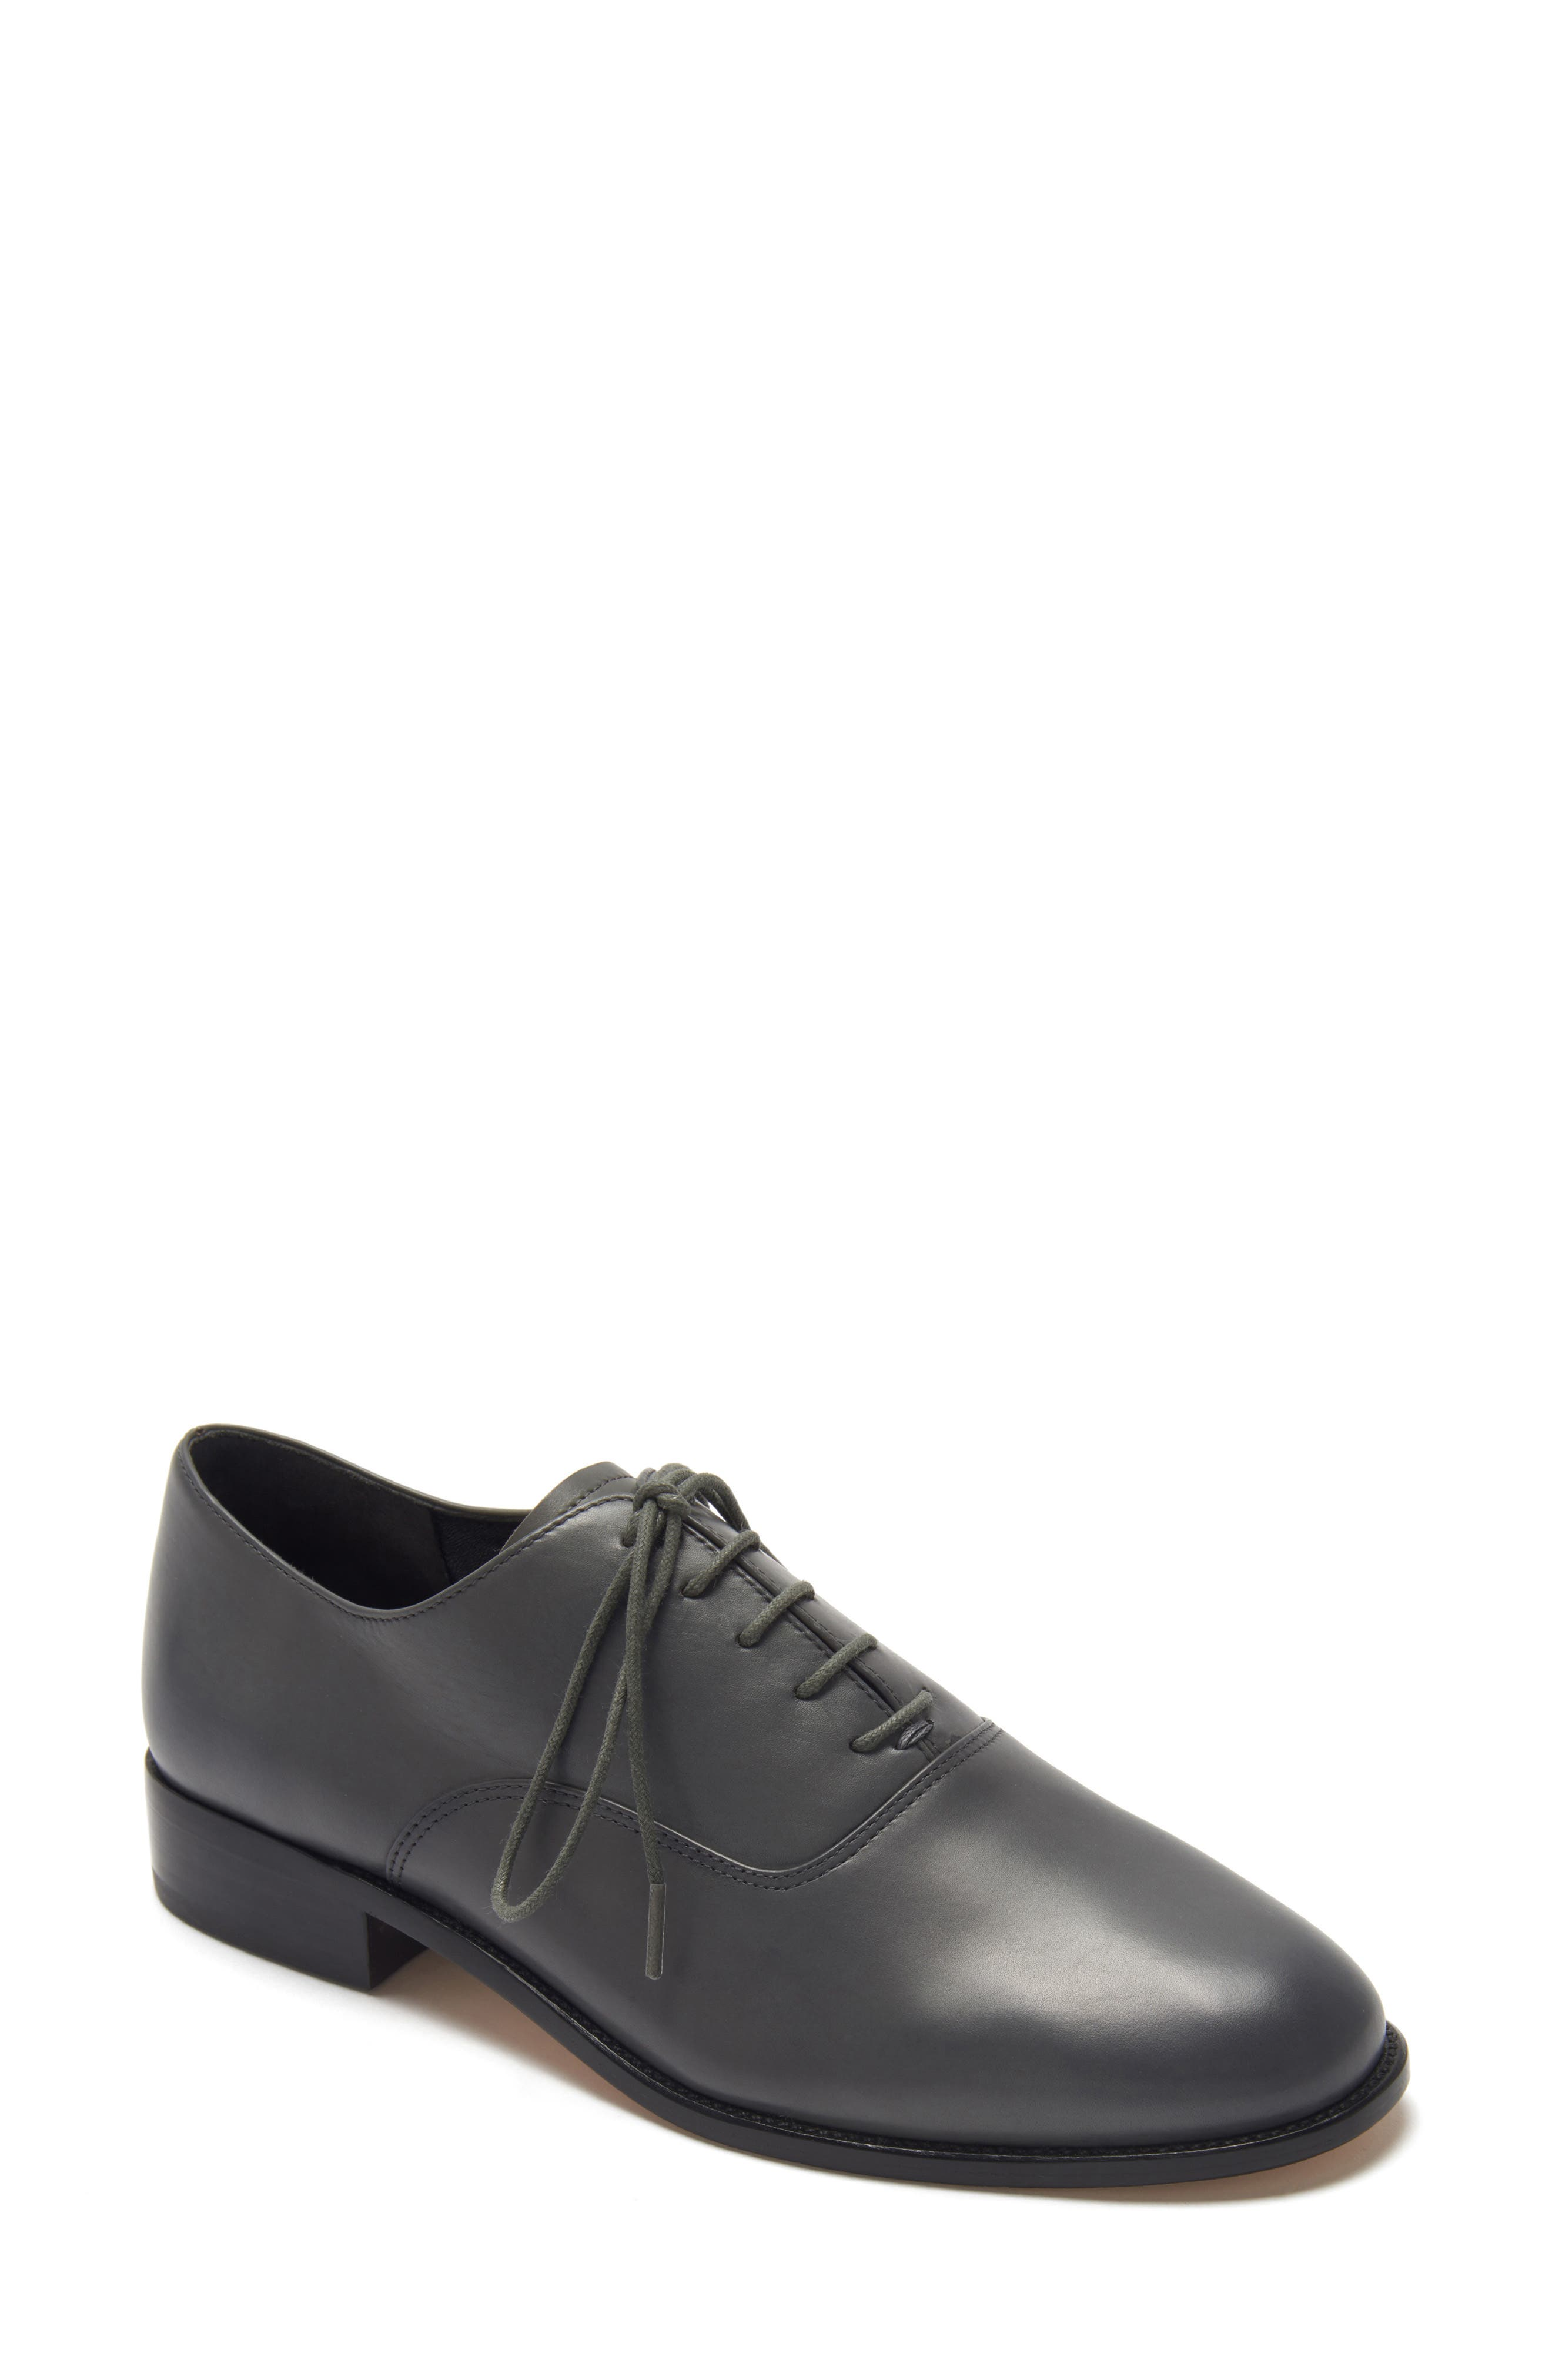 ETIENNE AIGNER, Emery Lace-Up Oxford, Main thumbnail 1, color, GRANITE LEATHER